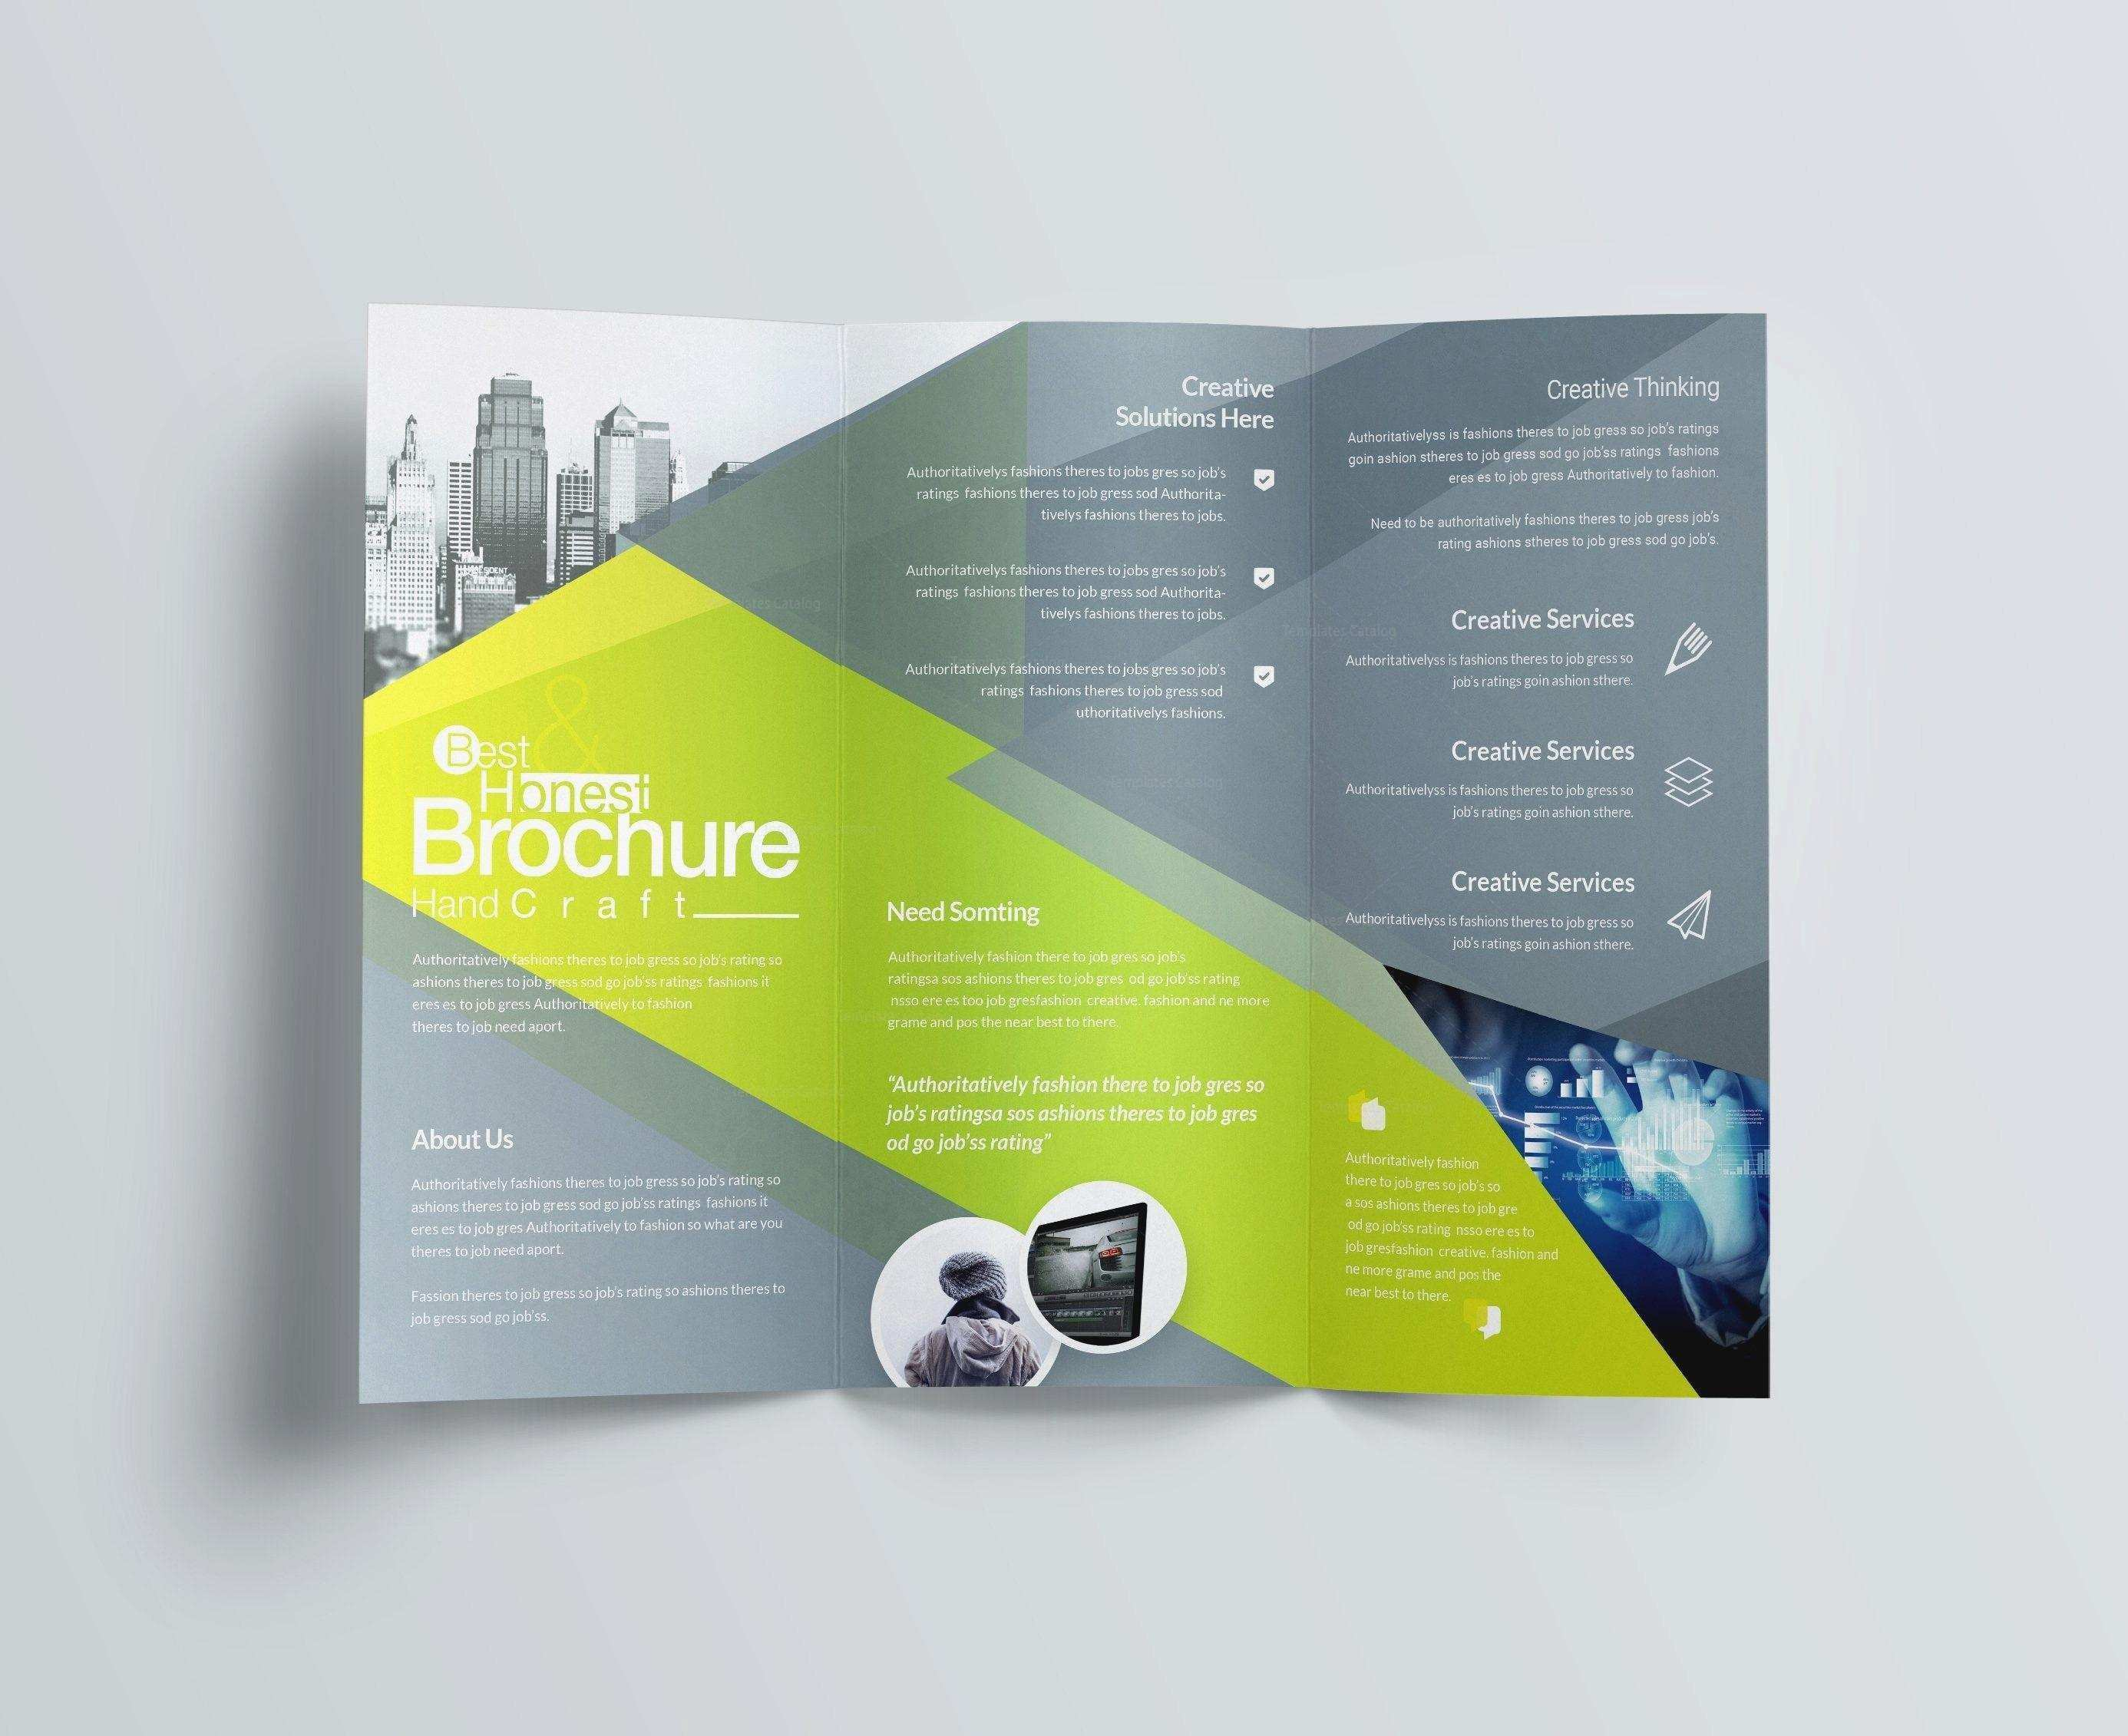 Block Party Flyer Template Free Unique New Party Flyer Vorlagen Gratis 2019 In 2020 Free Business Card Templates Free Brochure Template Brochure Design Template